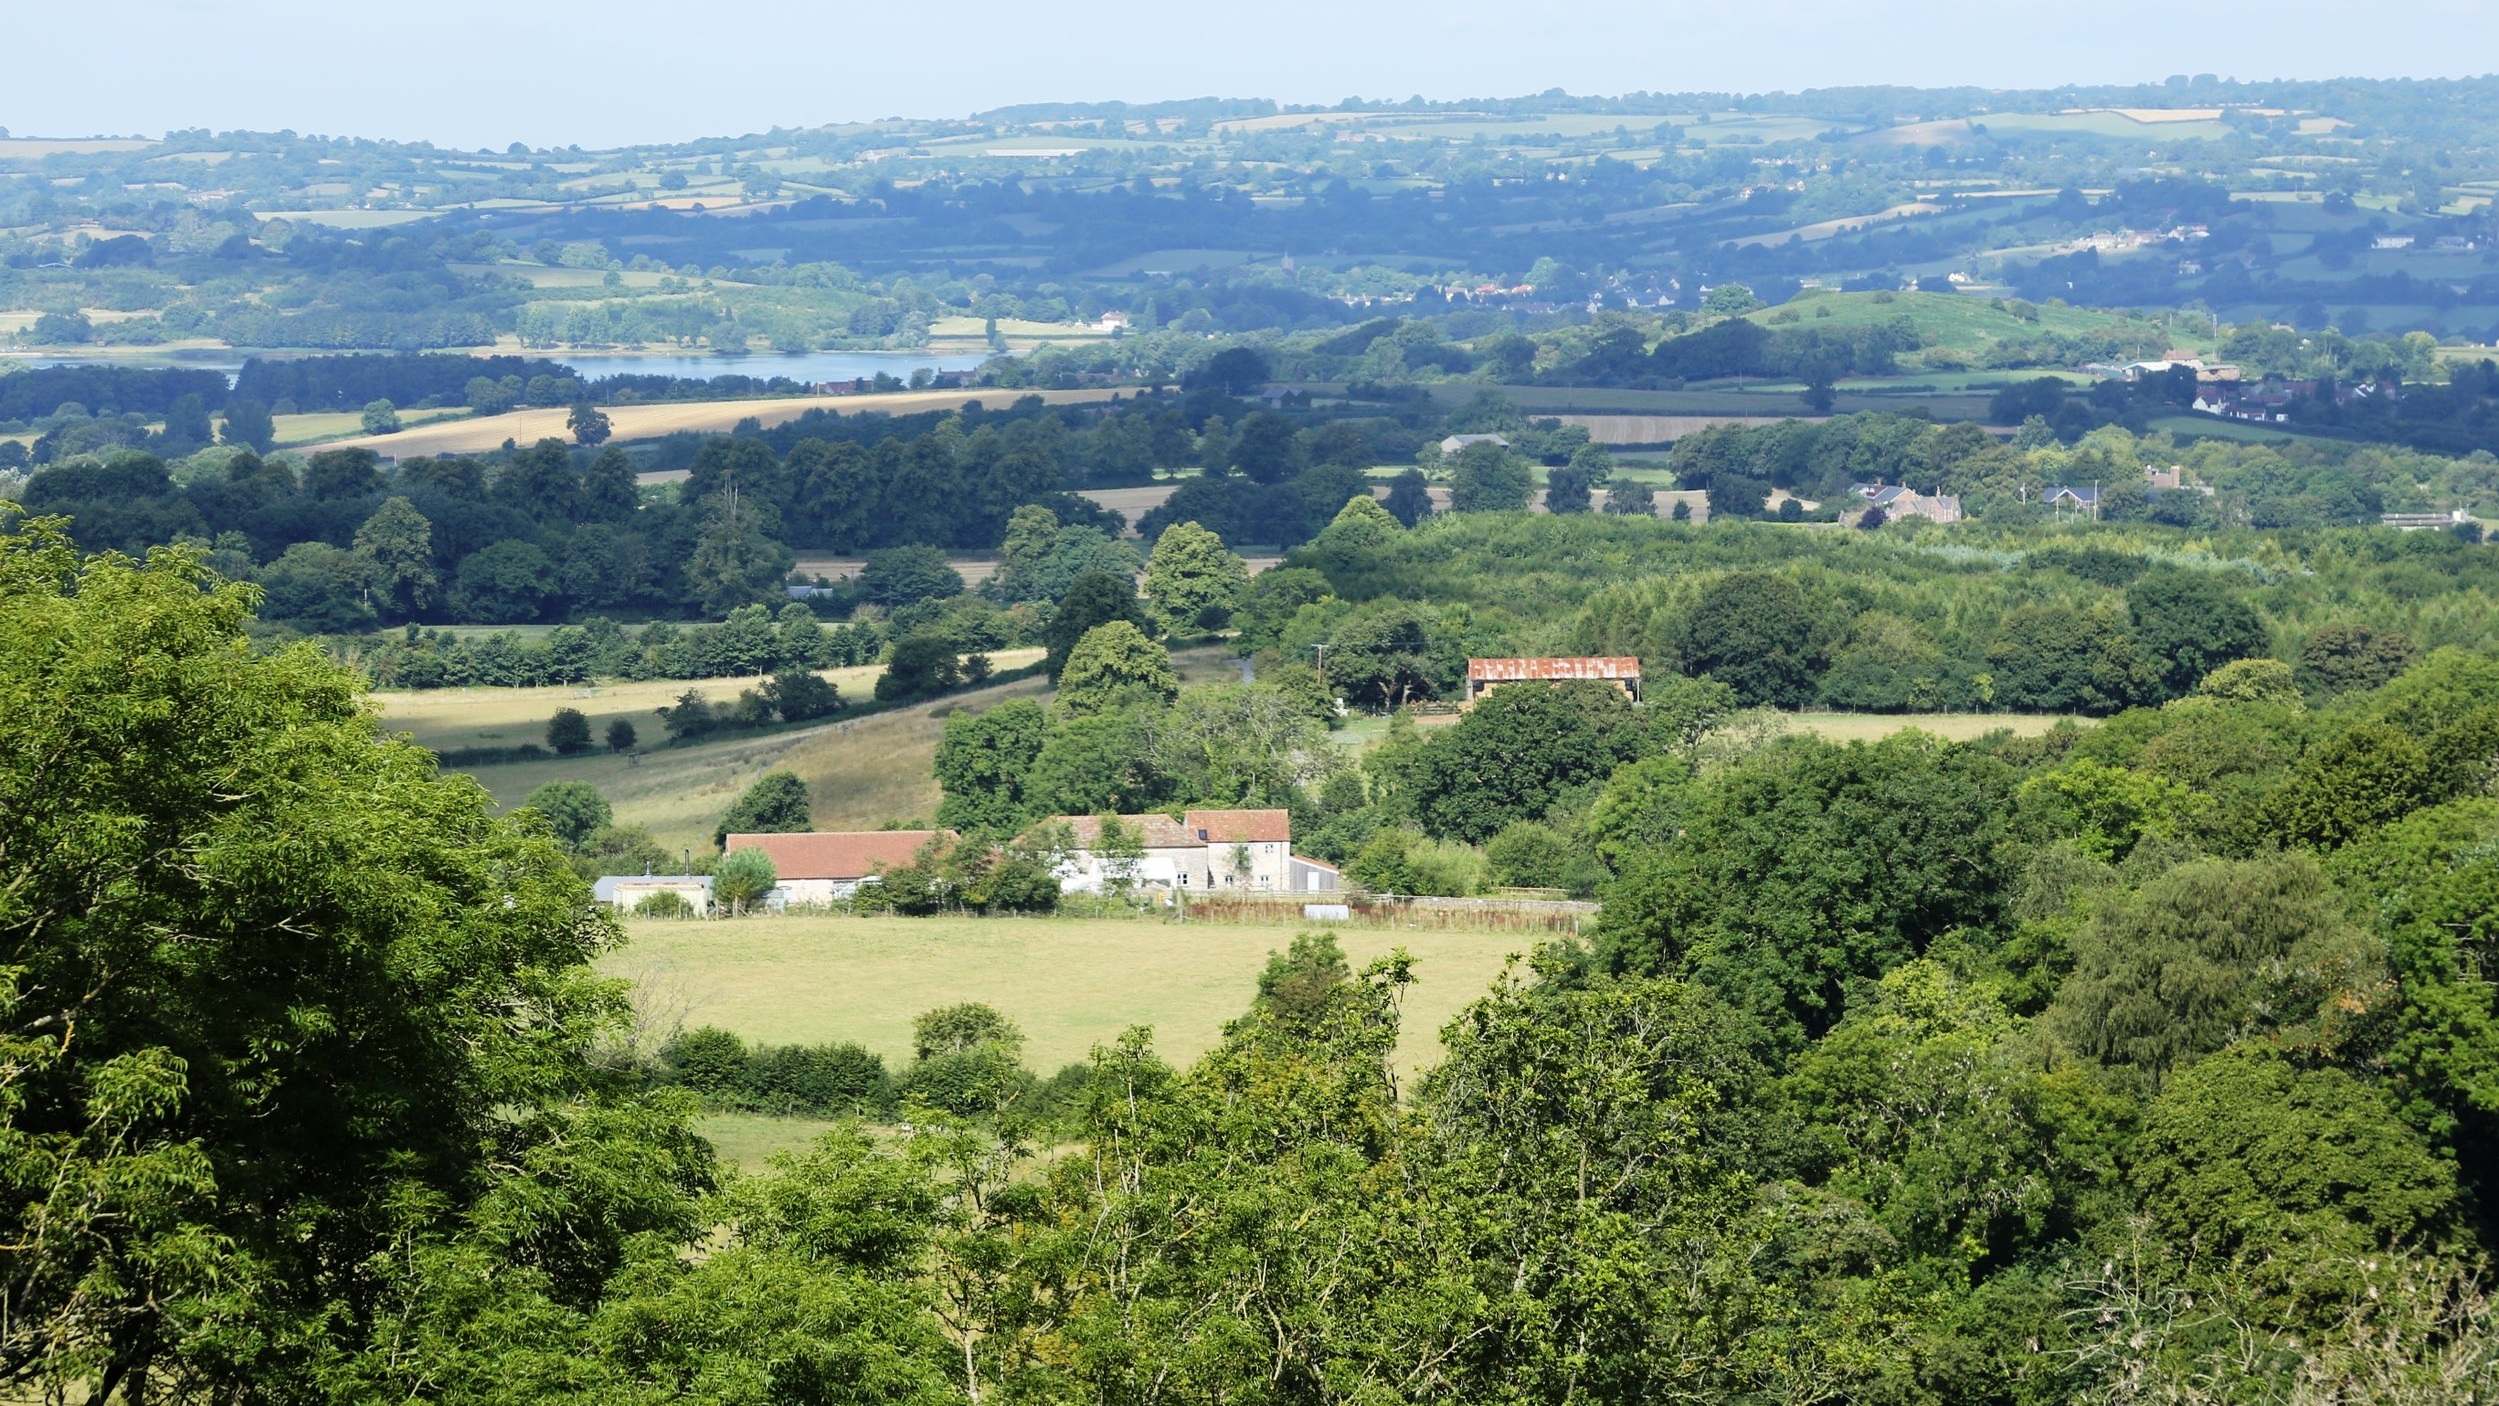 Folly+Farm+view+from+East+Hill+14.8.14+cdavies+%2870%29.jpg